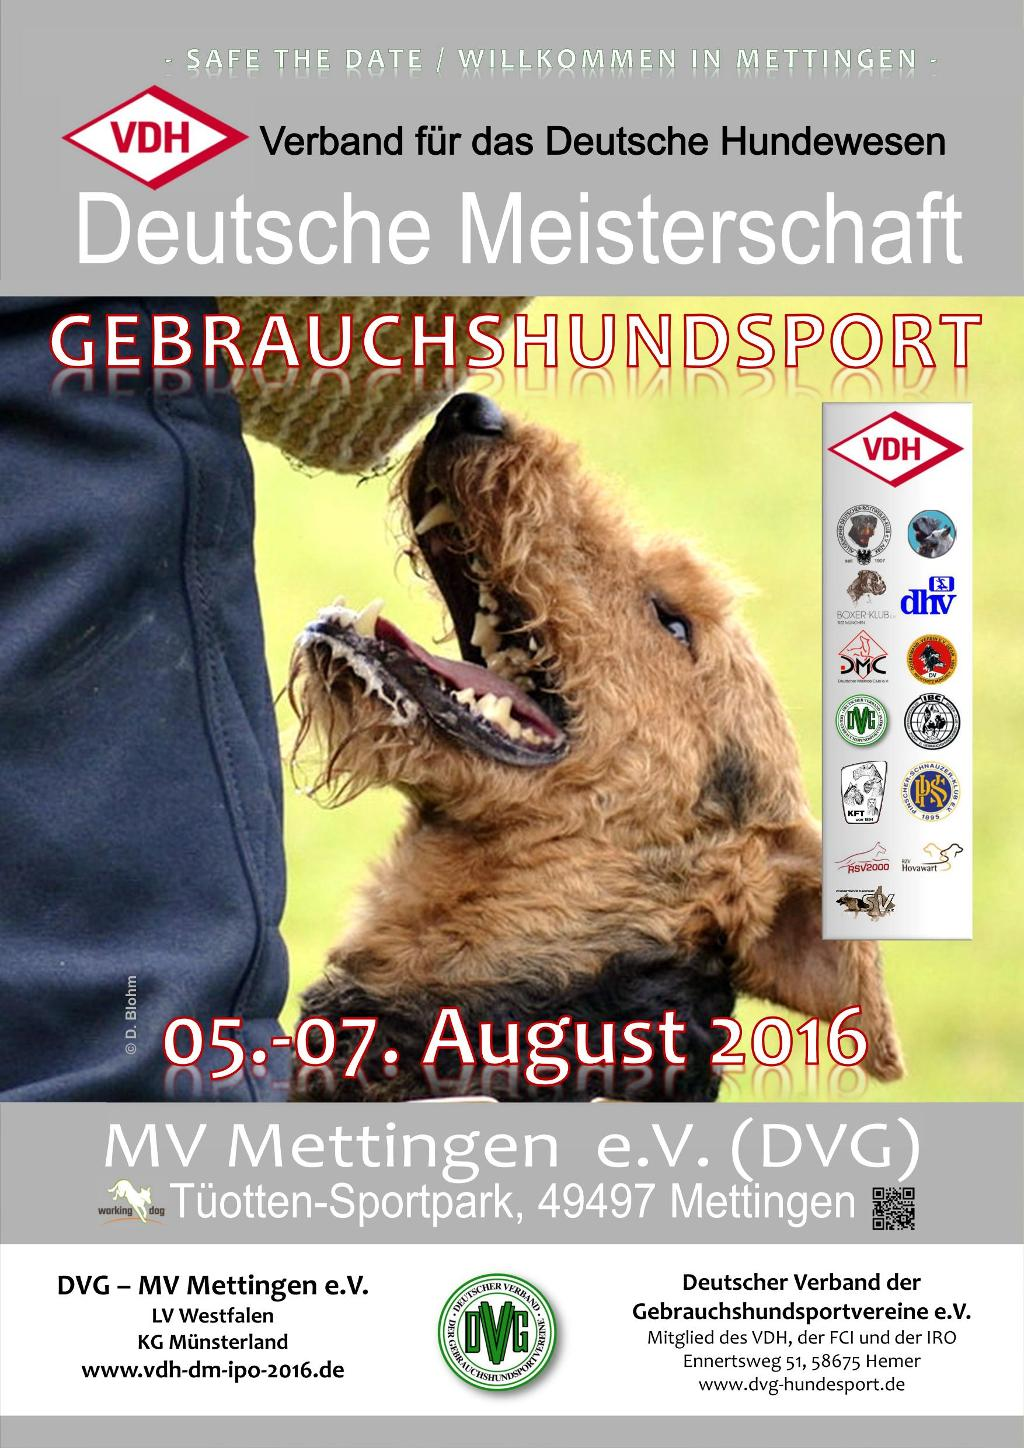 save_the_date_vdh_dm_ghs_2016_v2-1.jpg?derivate=usage%3Dposter&cs=791fc10ab04e2ceda8305c9f8bd93bf1478d3ca49569fad8b0e730bb1ab517bfbeebe1f6e8f61722784627e60eddf32ae622b64997db9382d2bd3f36fa1d6357